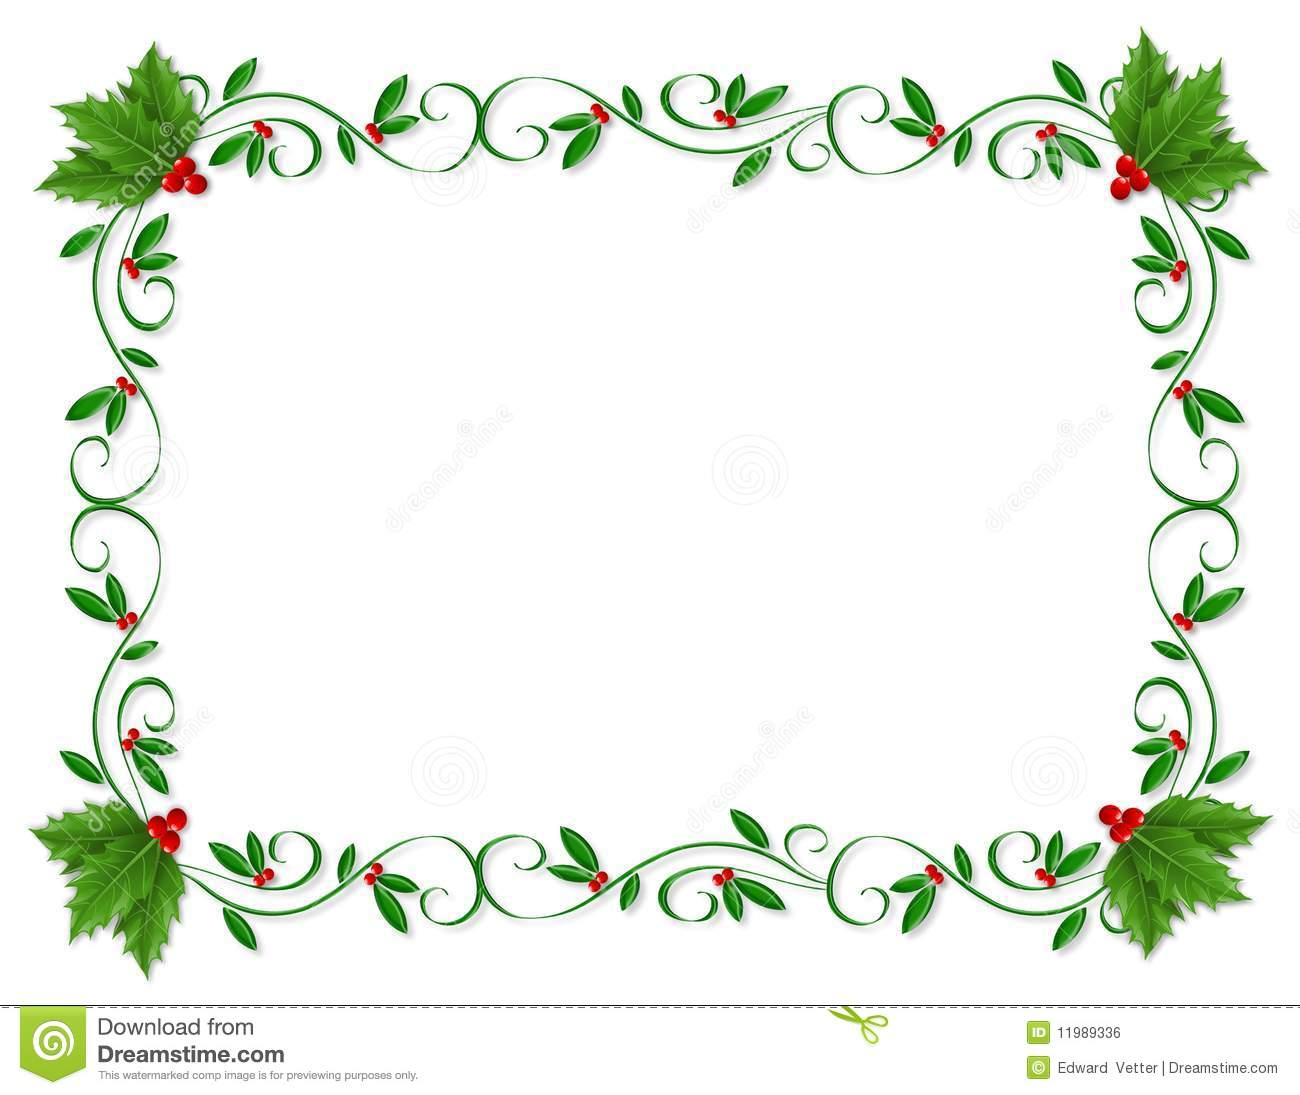 2596 Holly free clipart.